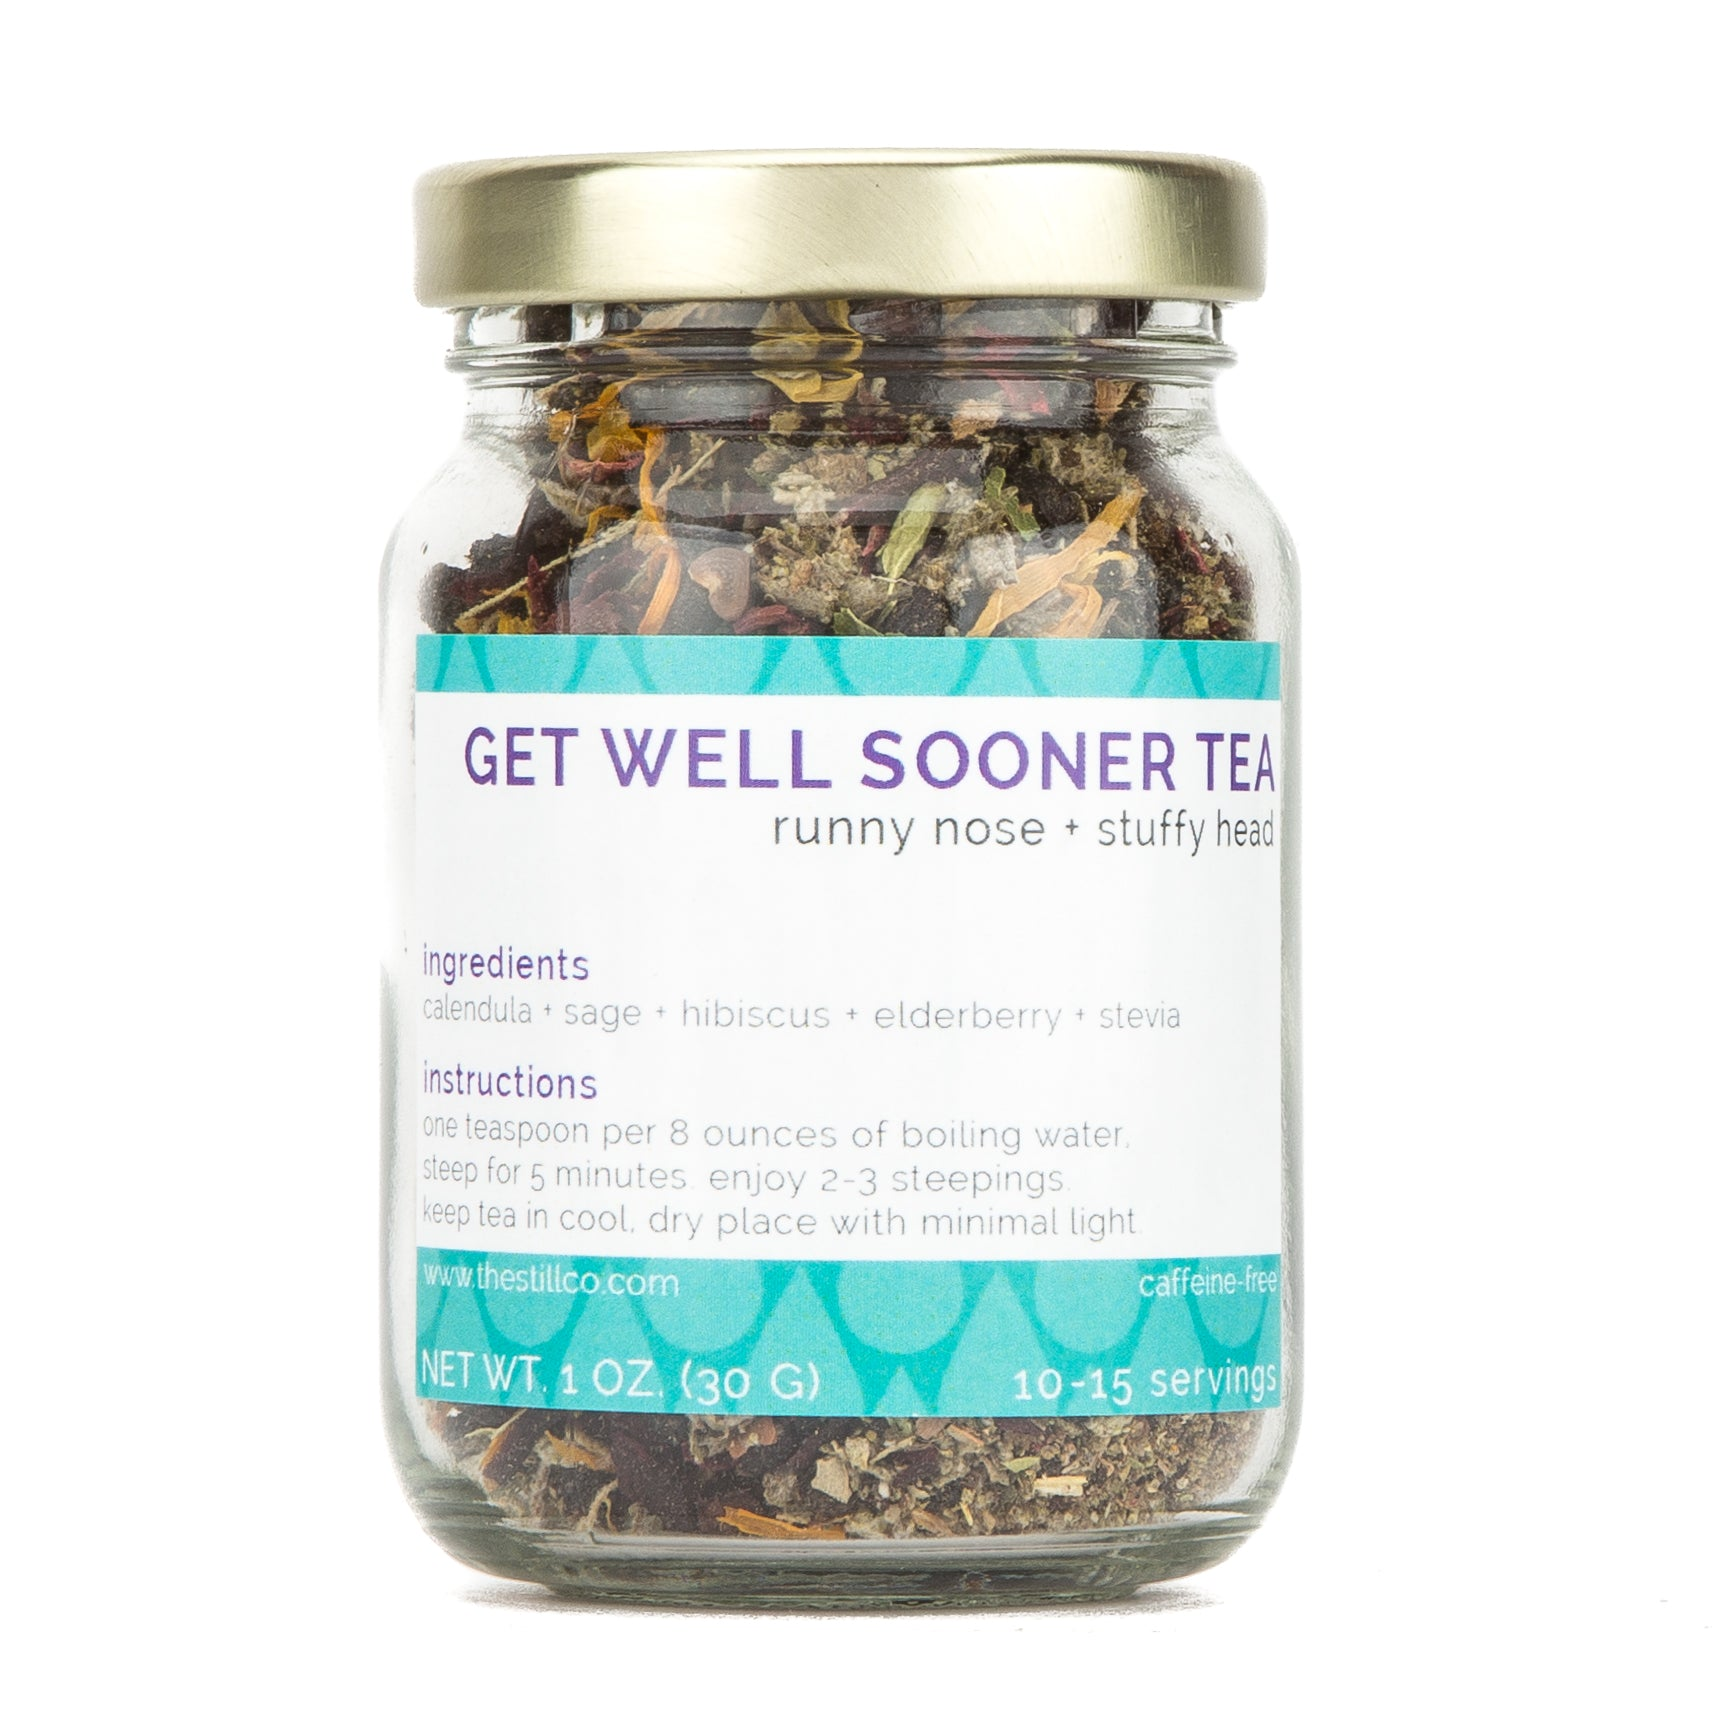 Get Well Sooner Tea